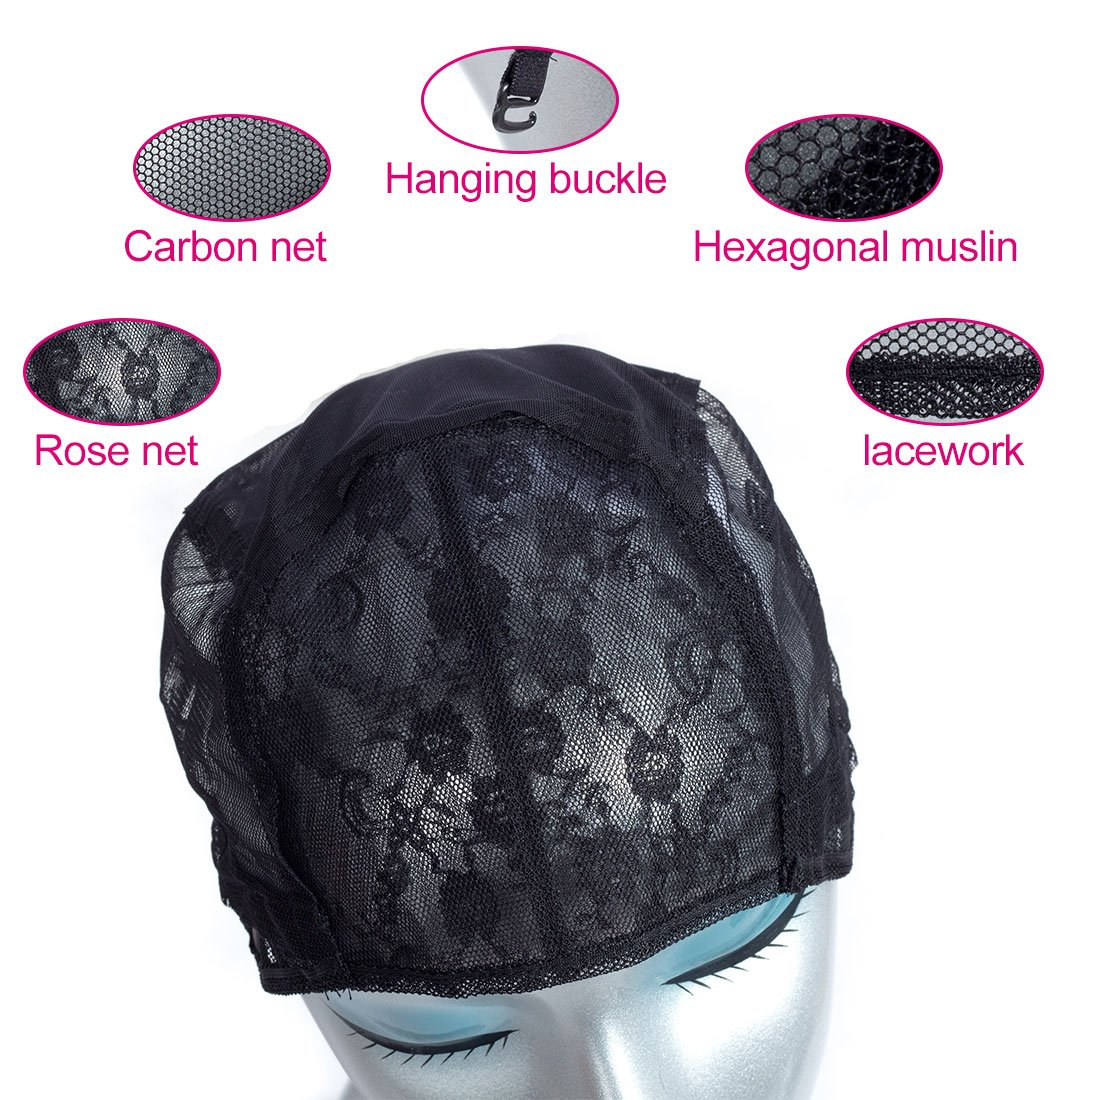 MQYQ 5pcs Black Double Lace Wig Caps For Making Wigs Hair Net with Adjustable Straps Swiss Lace